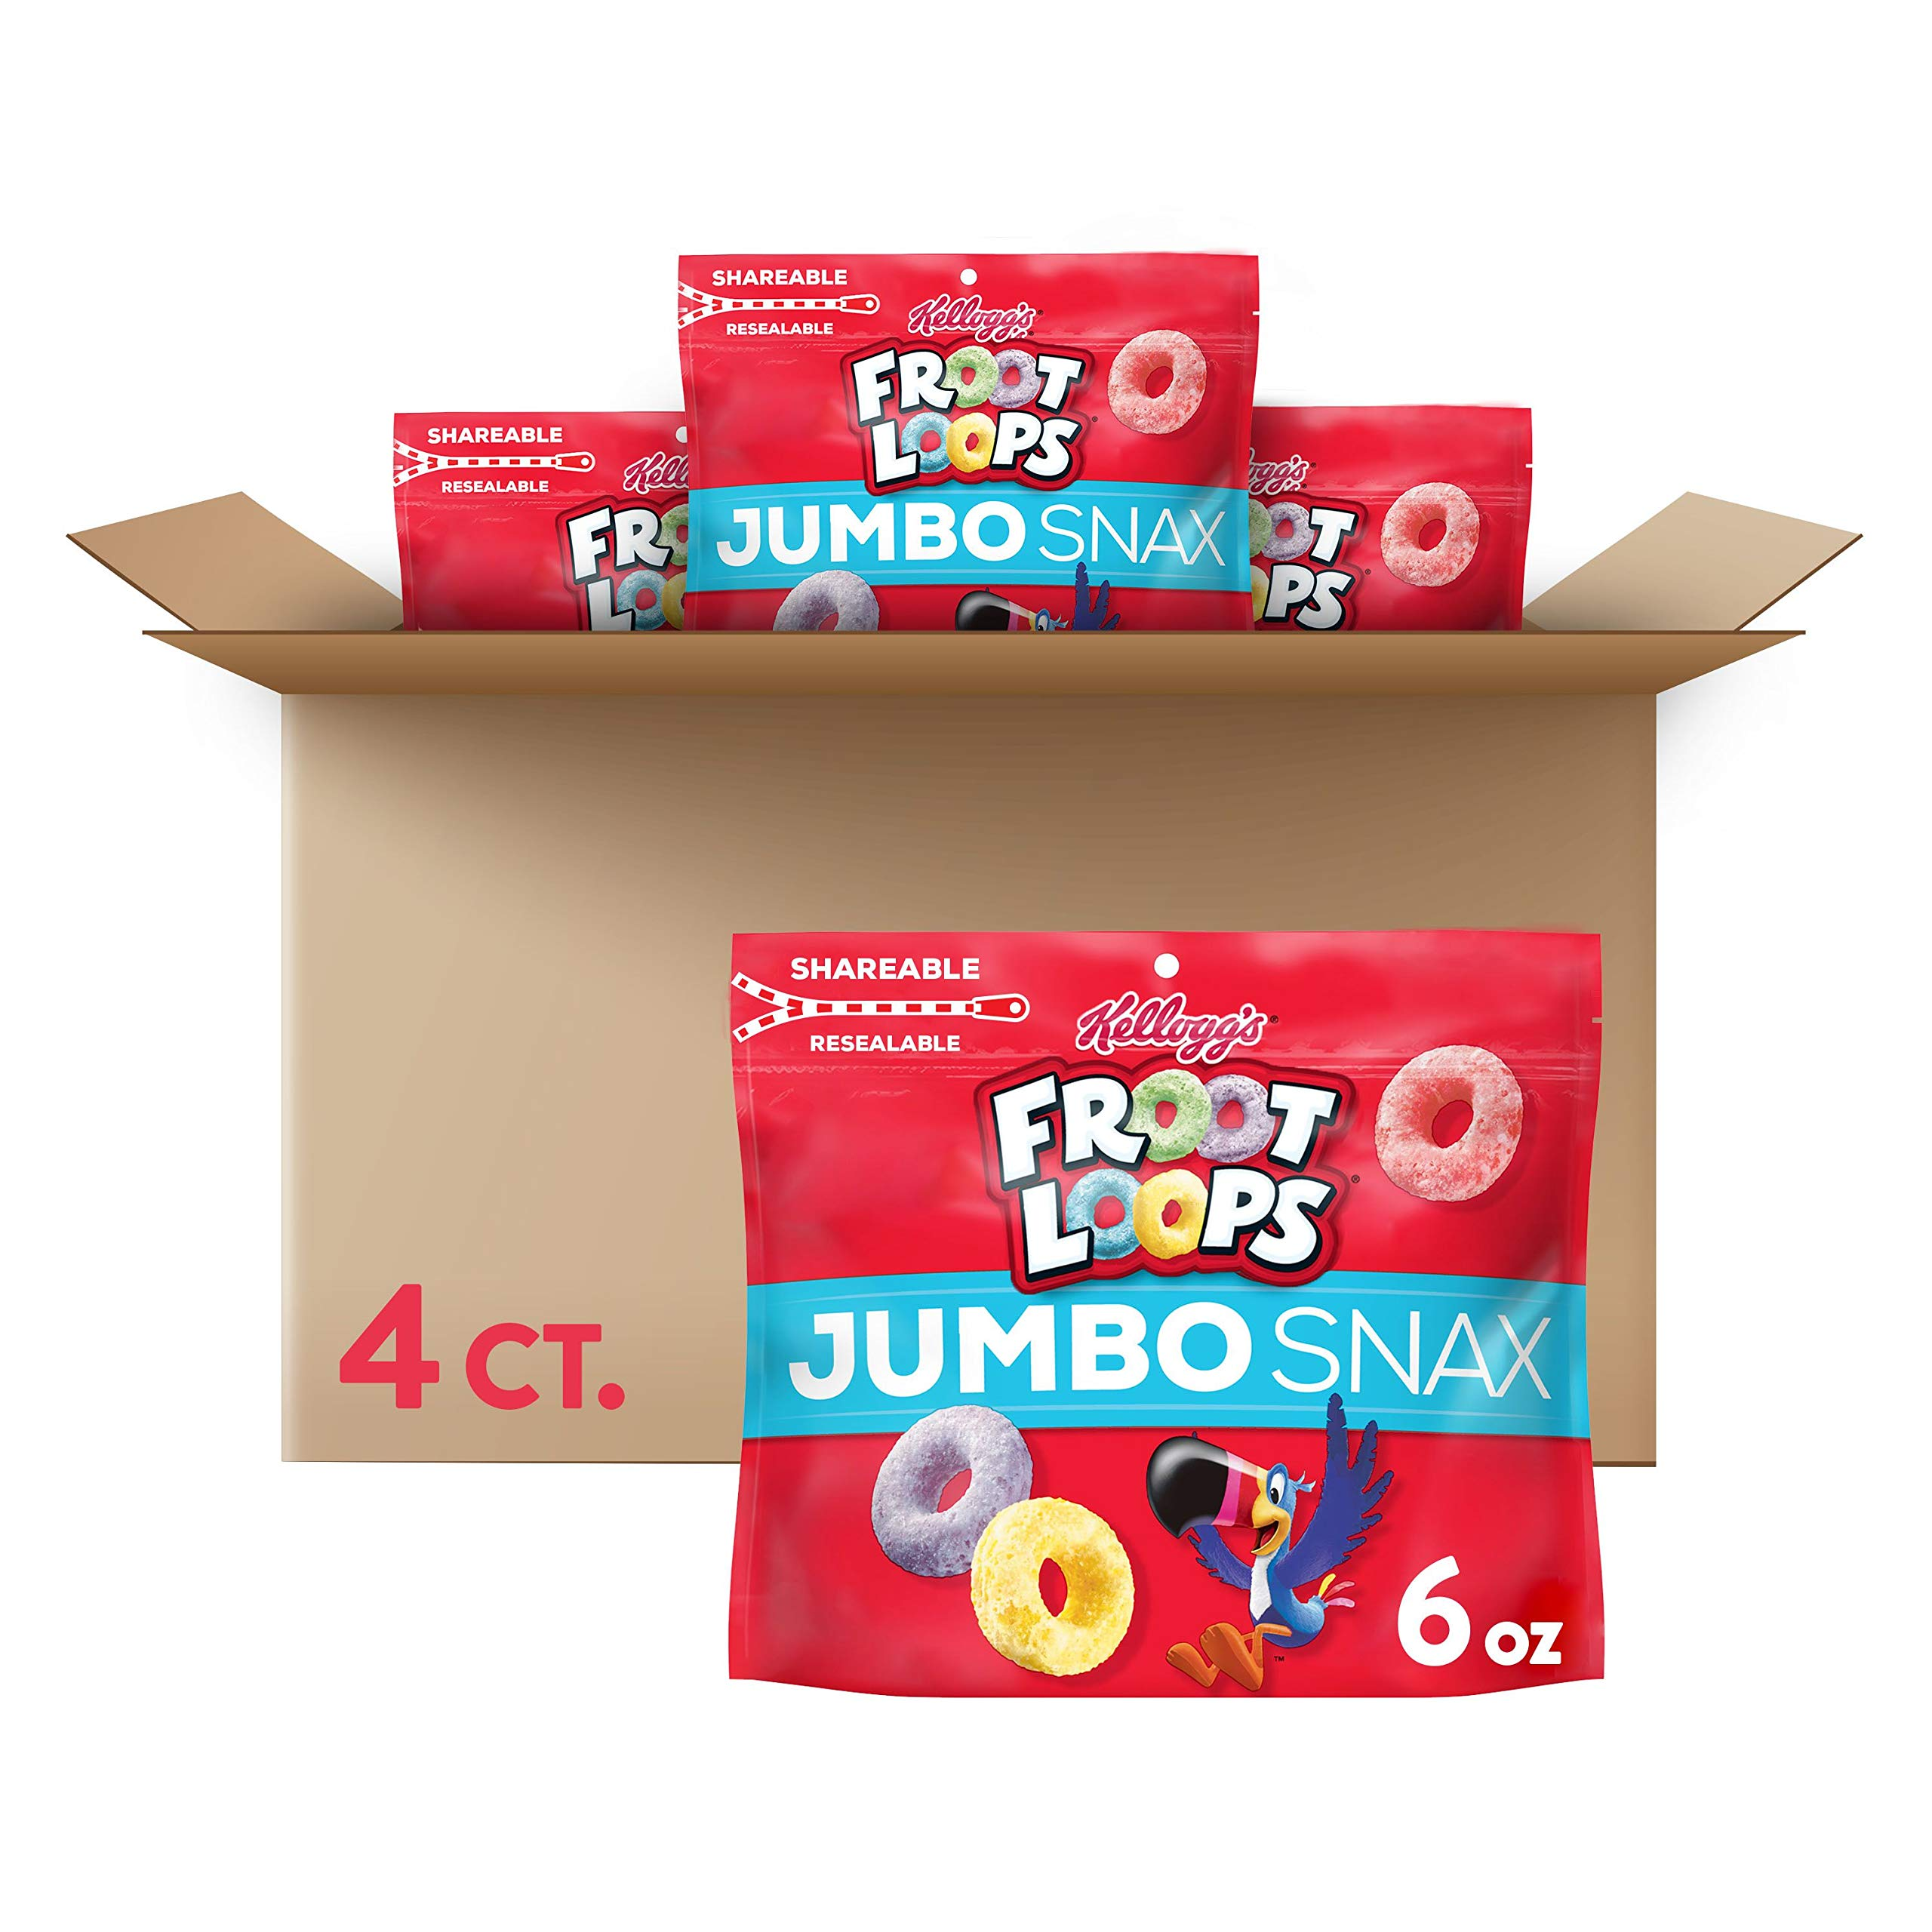 Kellogg's Froot Loops Jumbo Snax, Cereal Snacks, Original, On the Go, 6oz Resealable Bag(Pack of 4)